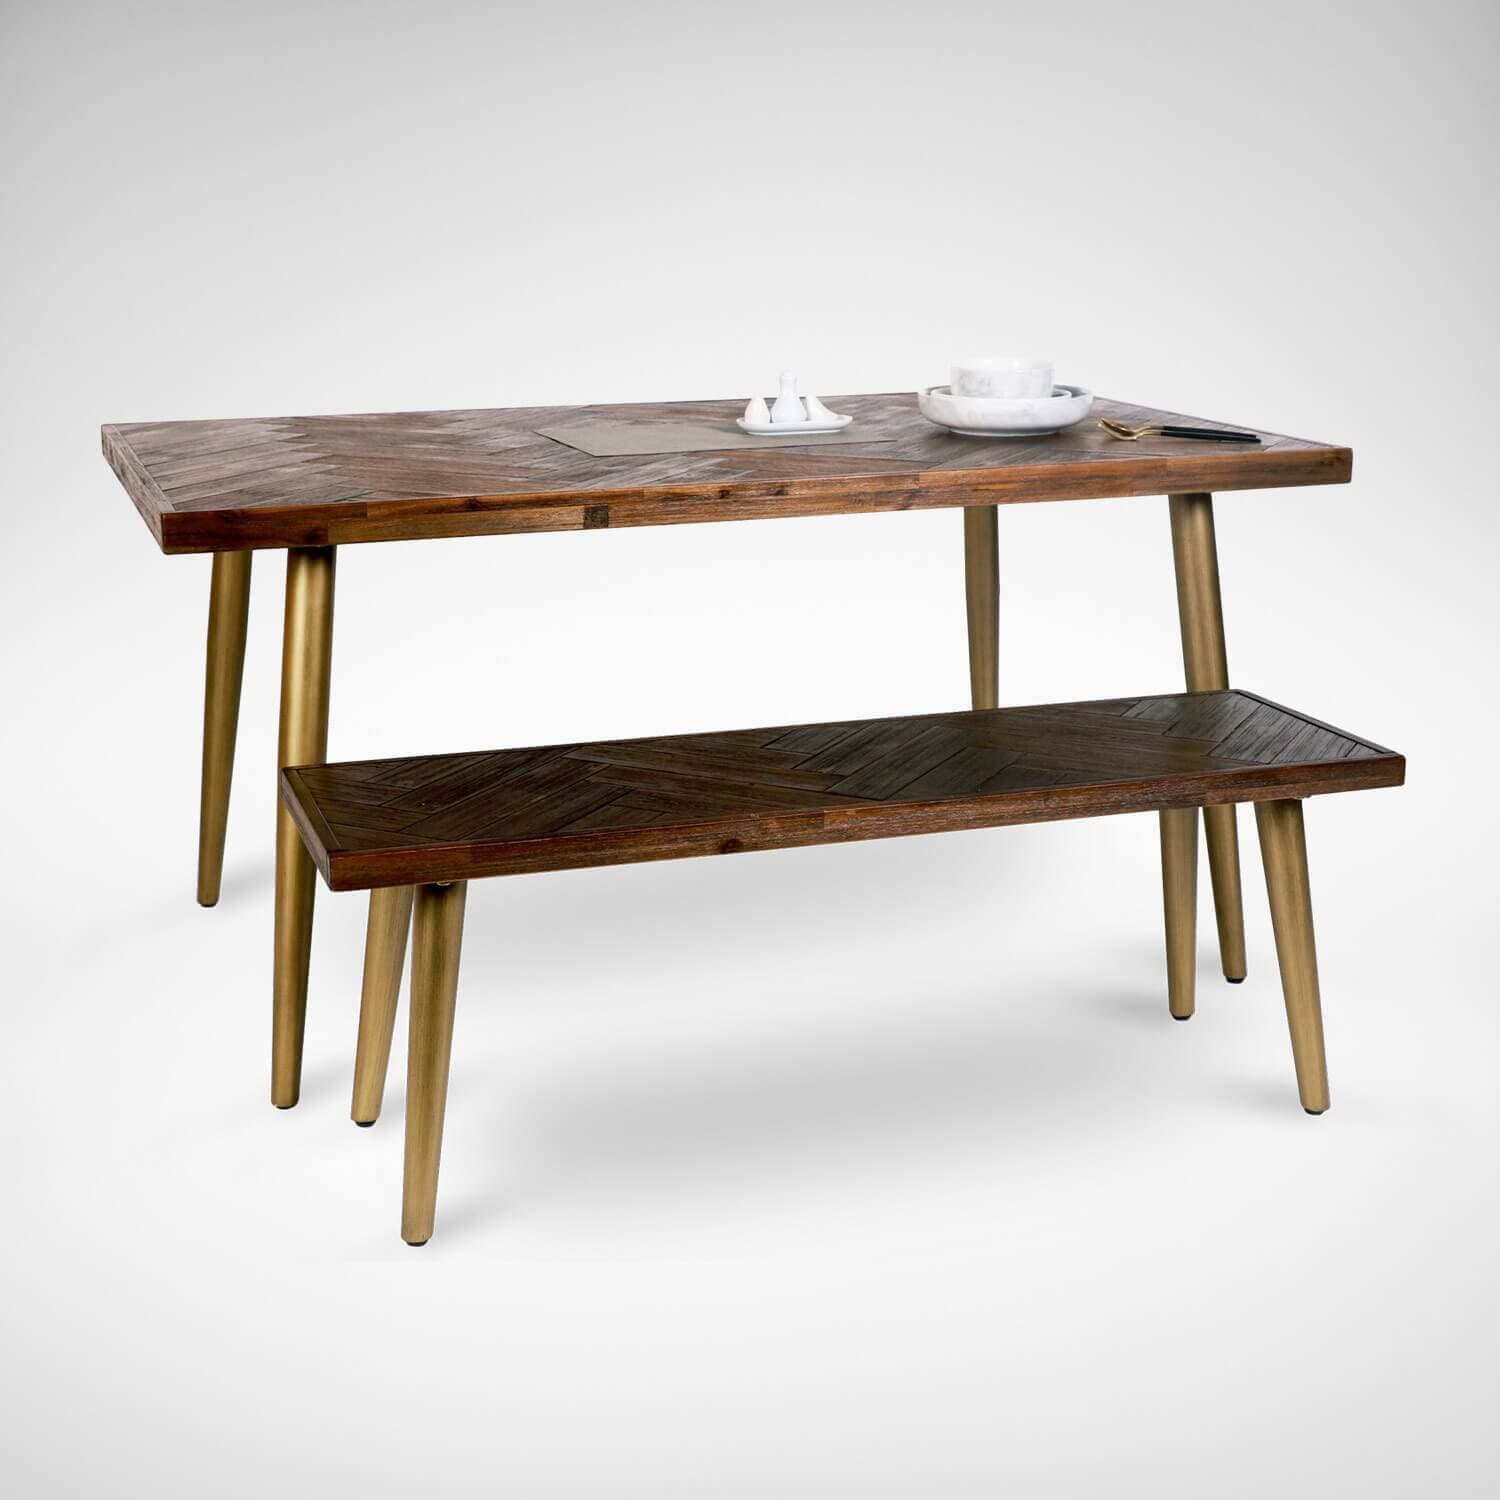 Wooden Dining Bench with Mobility - Comfort Furniture